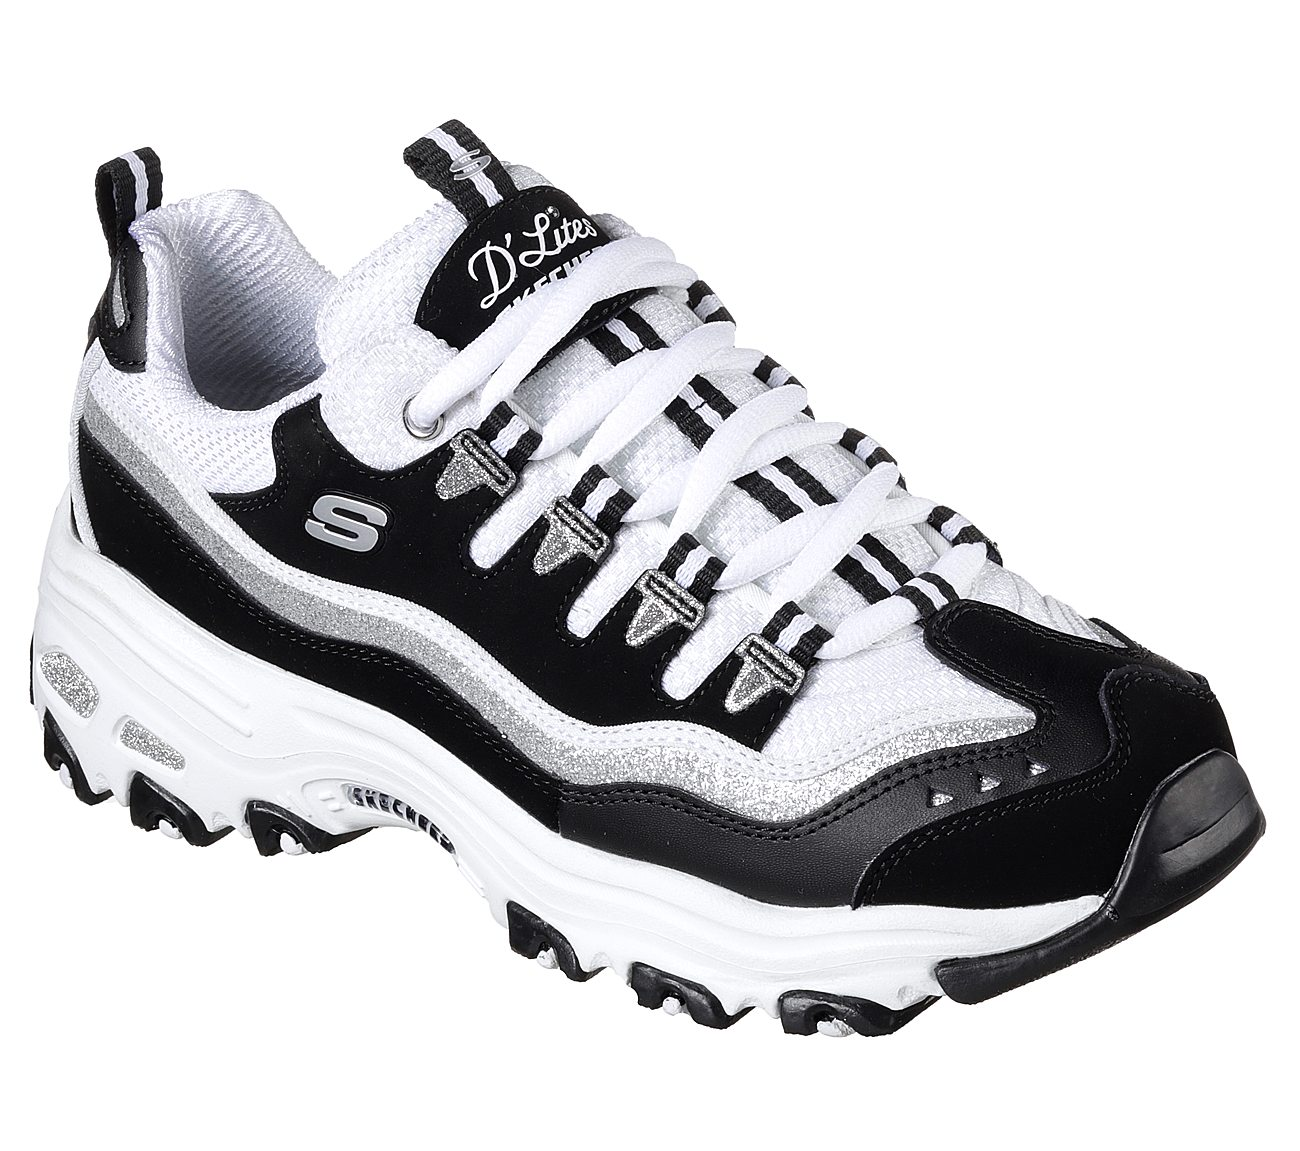 New Retro Skechers D'Lites Shoes